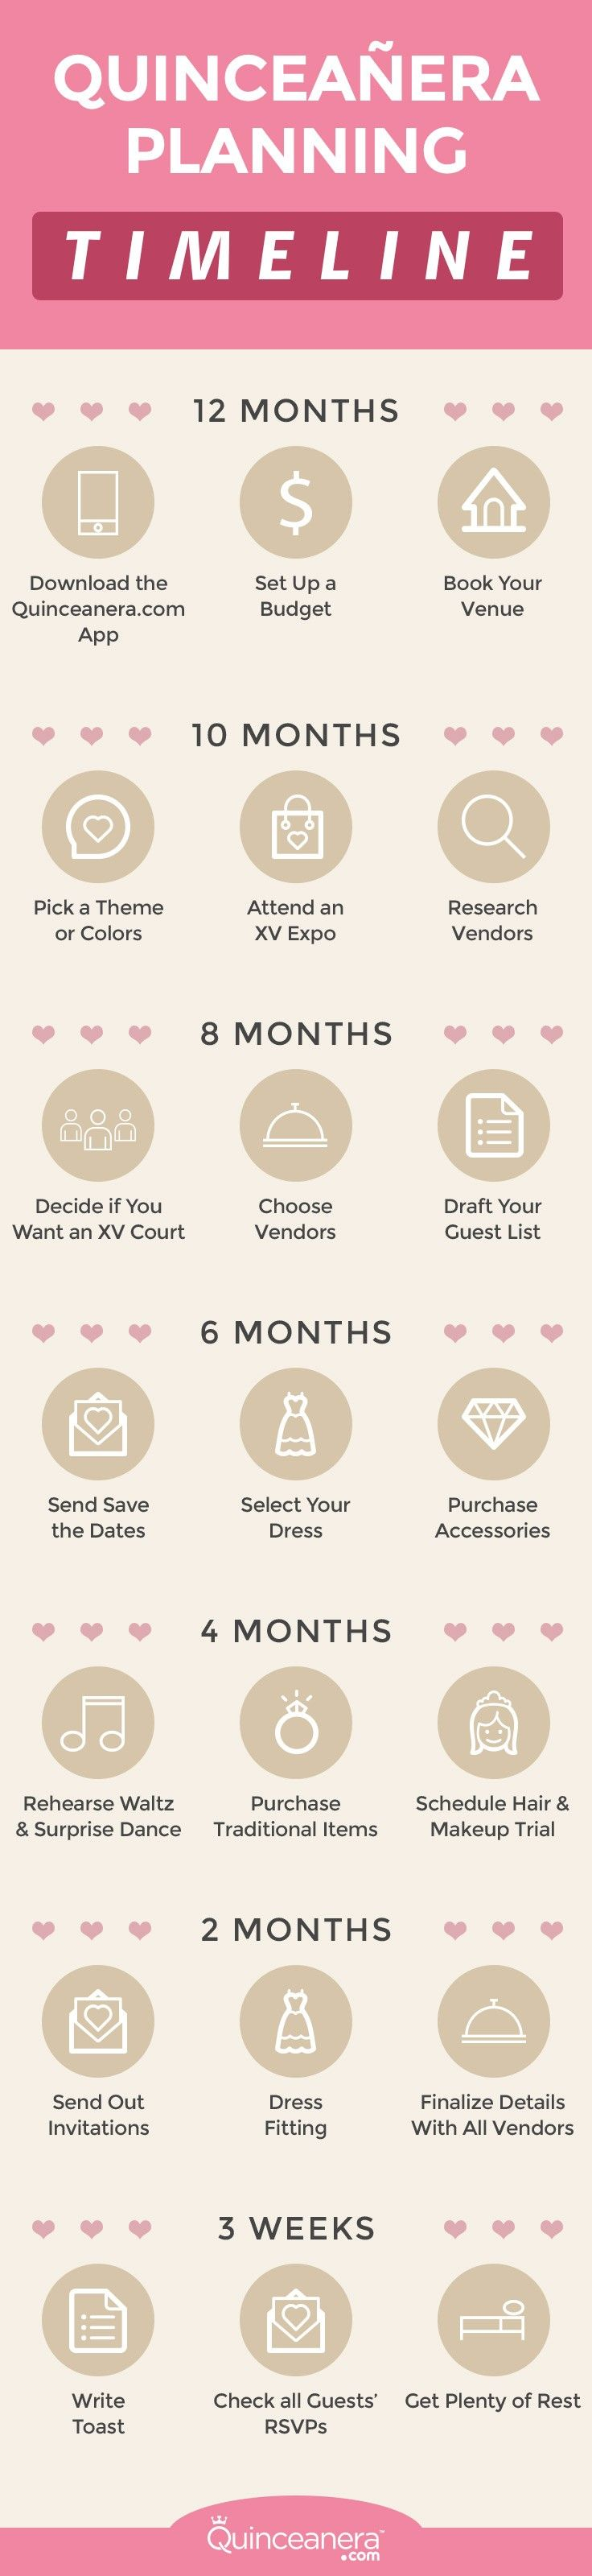 Your 12-month Quinceañera planning list | Quinceanera Ideas |